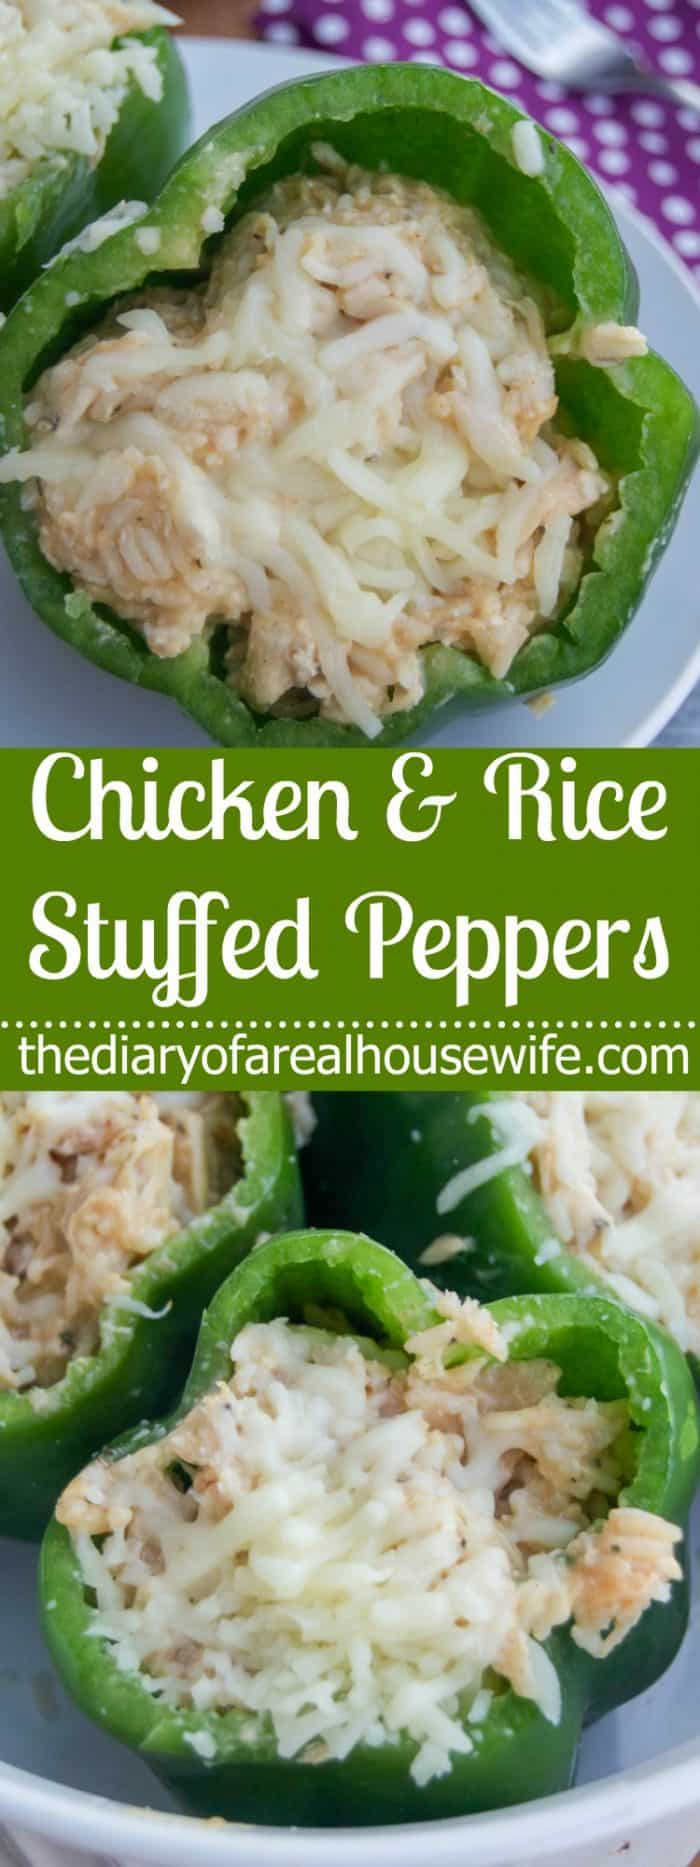 Chicken and Rice Stuffed Peppers for an easy family dinner